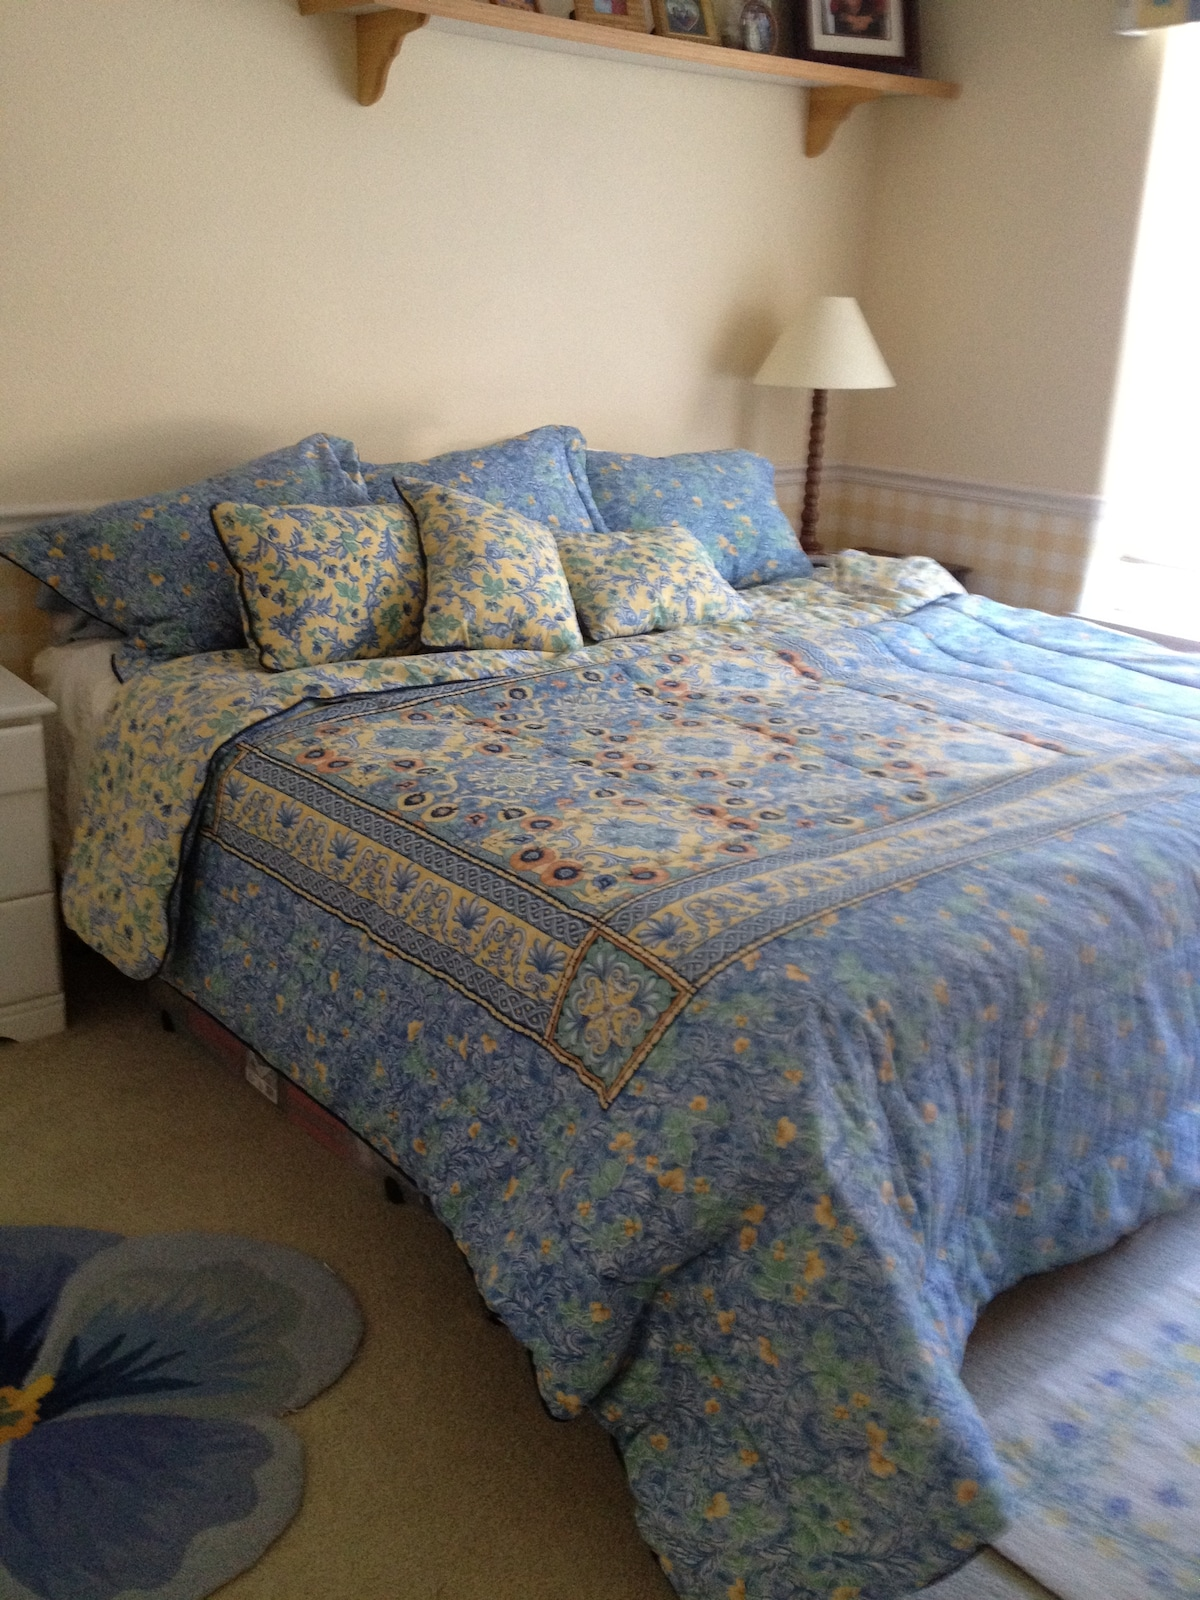 king size bed with feather/down pillow options.  Electric blanket also available.